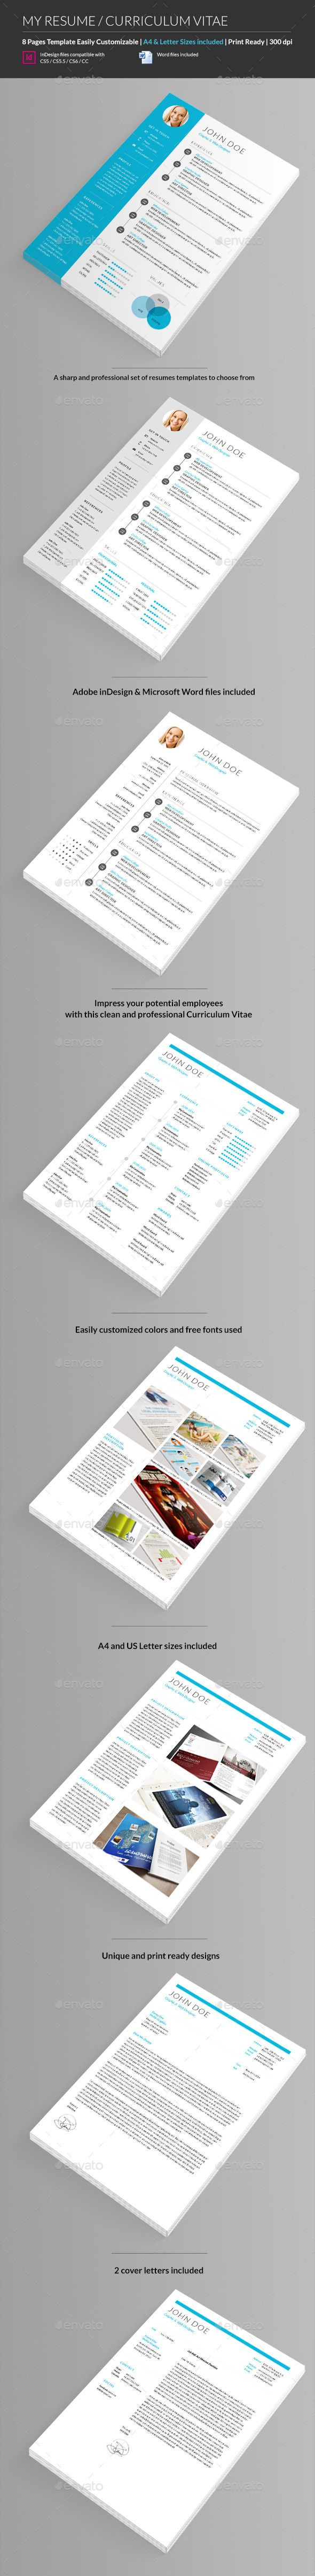 must see my resume pins creative cv design resume and resume my resume cv